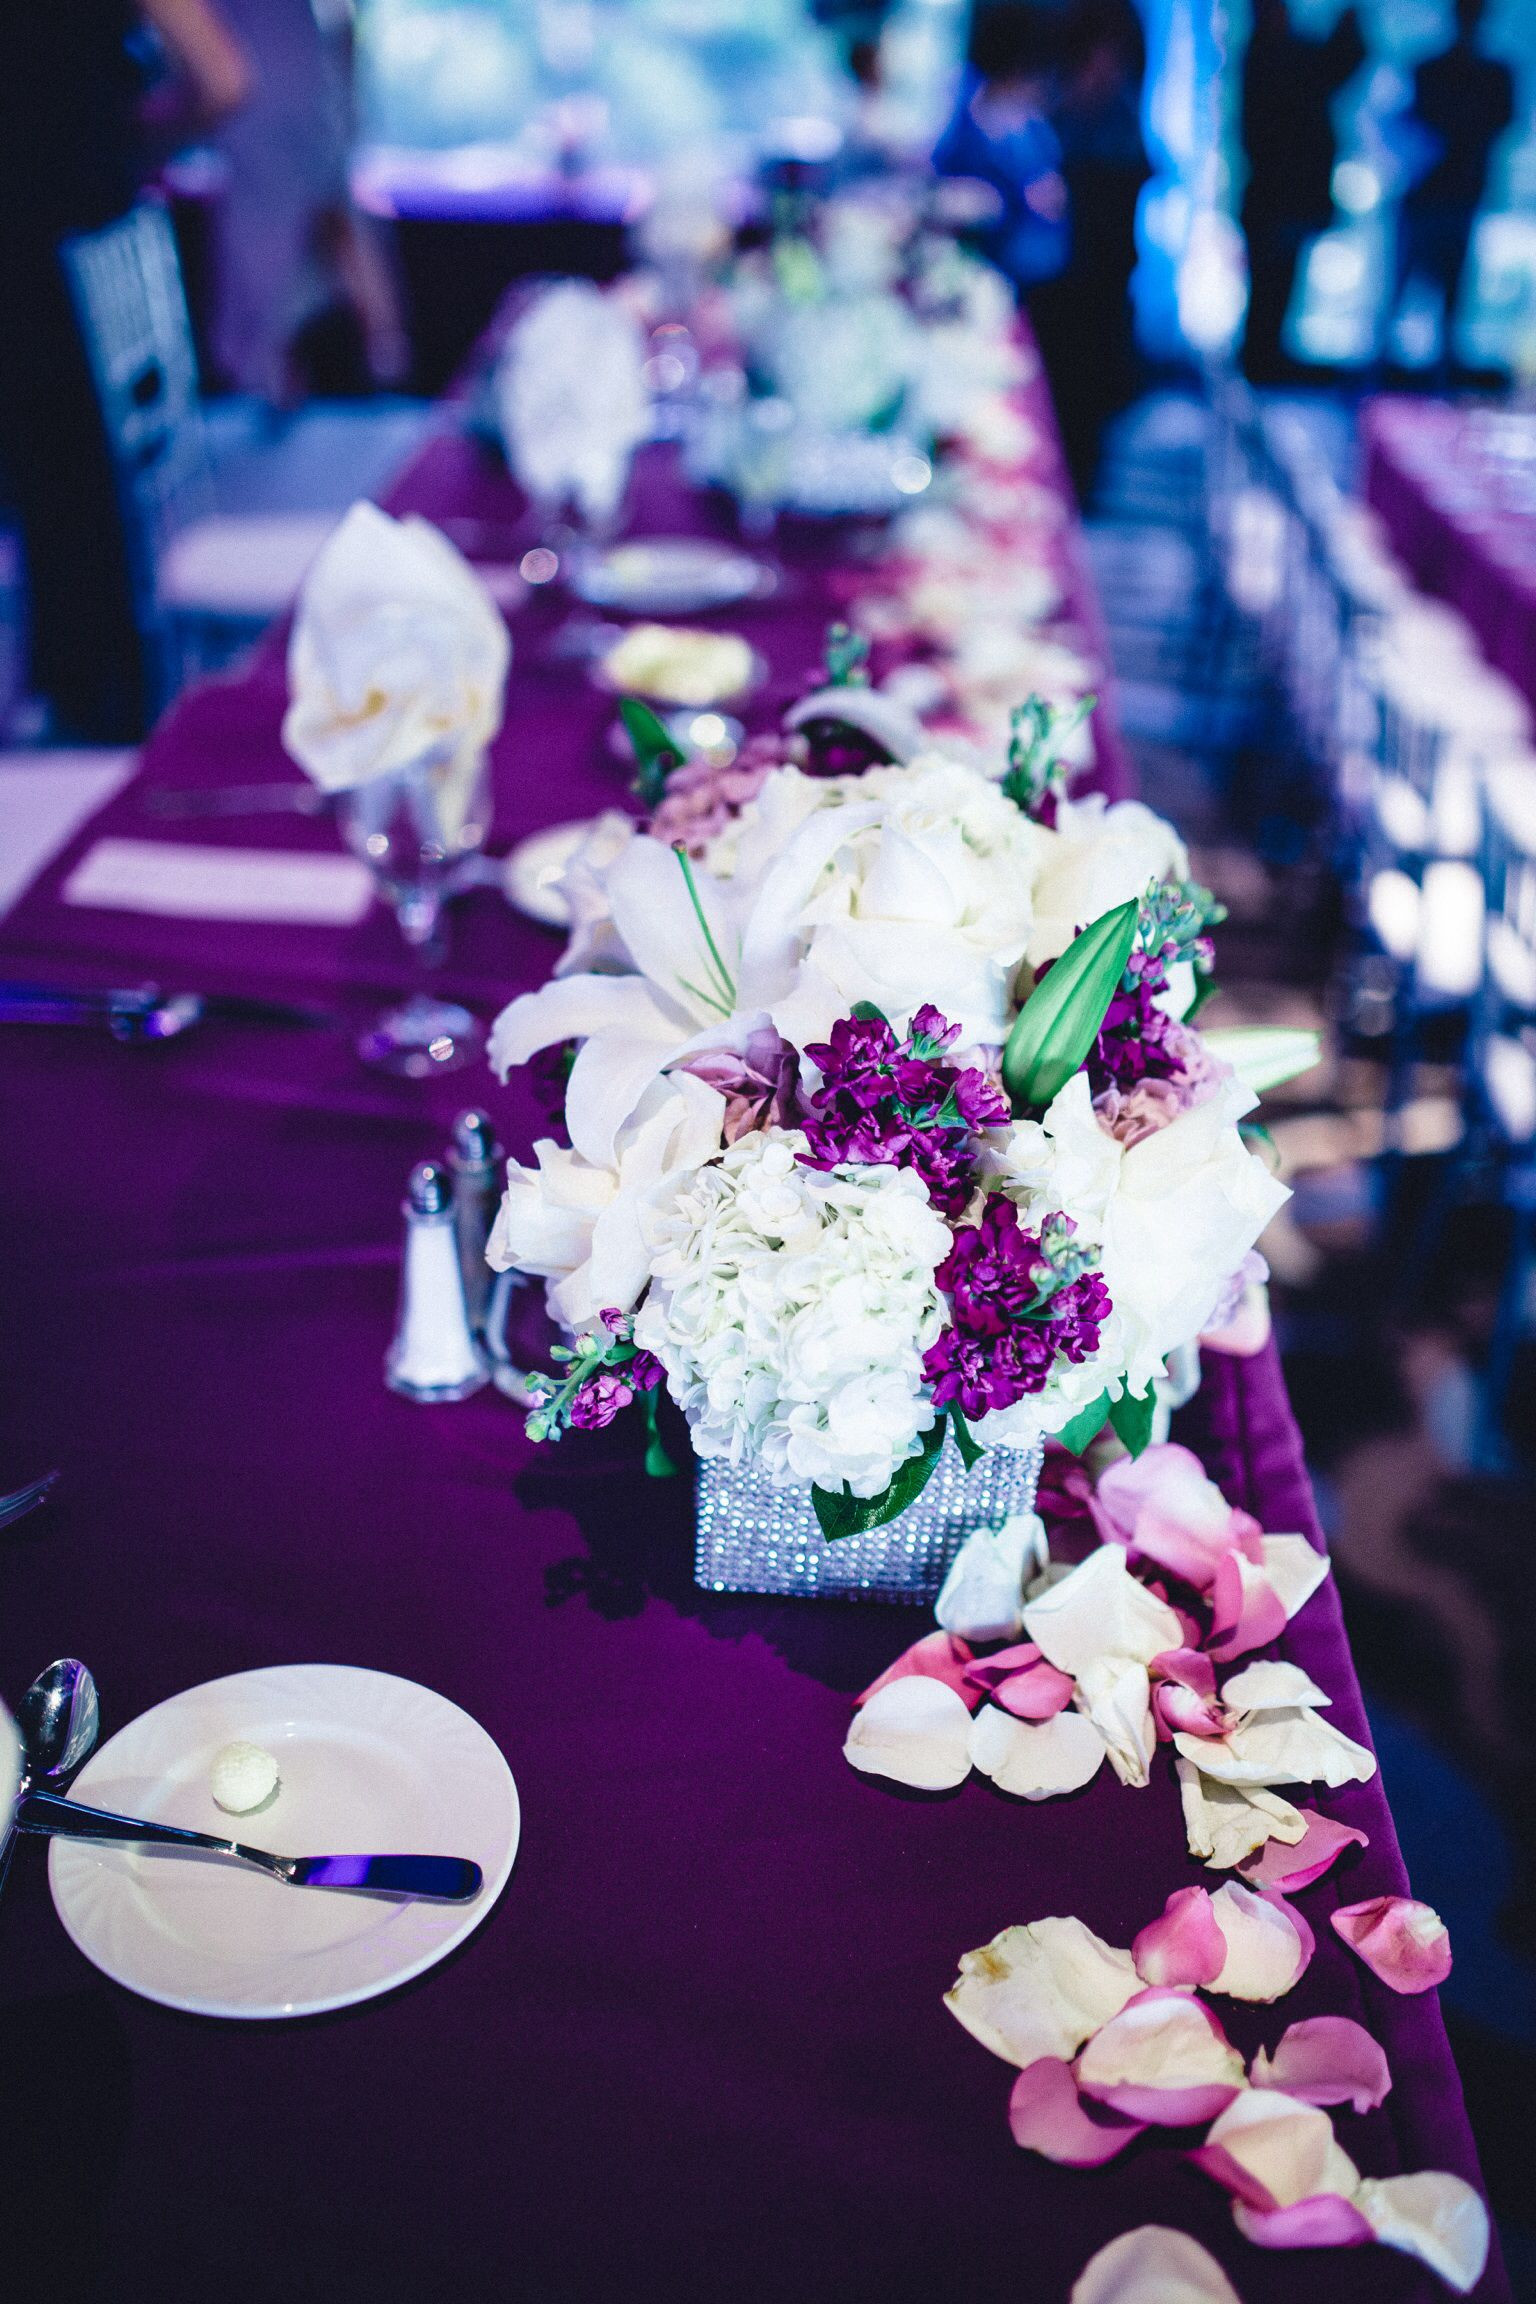 Purple themed table setting